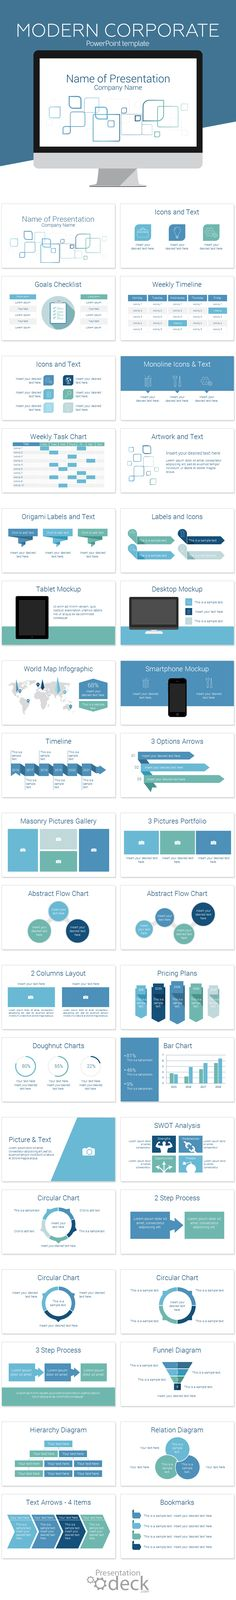 Modern corporate PowerPoint template with a clean illustration of abstract rounded squares on a white background. This template could be used for a wide range of topics and fit perfectly for a corporate report or training presentation. Check it out!